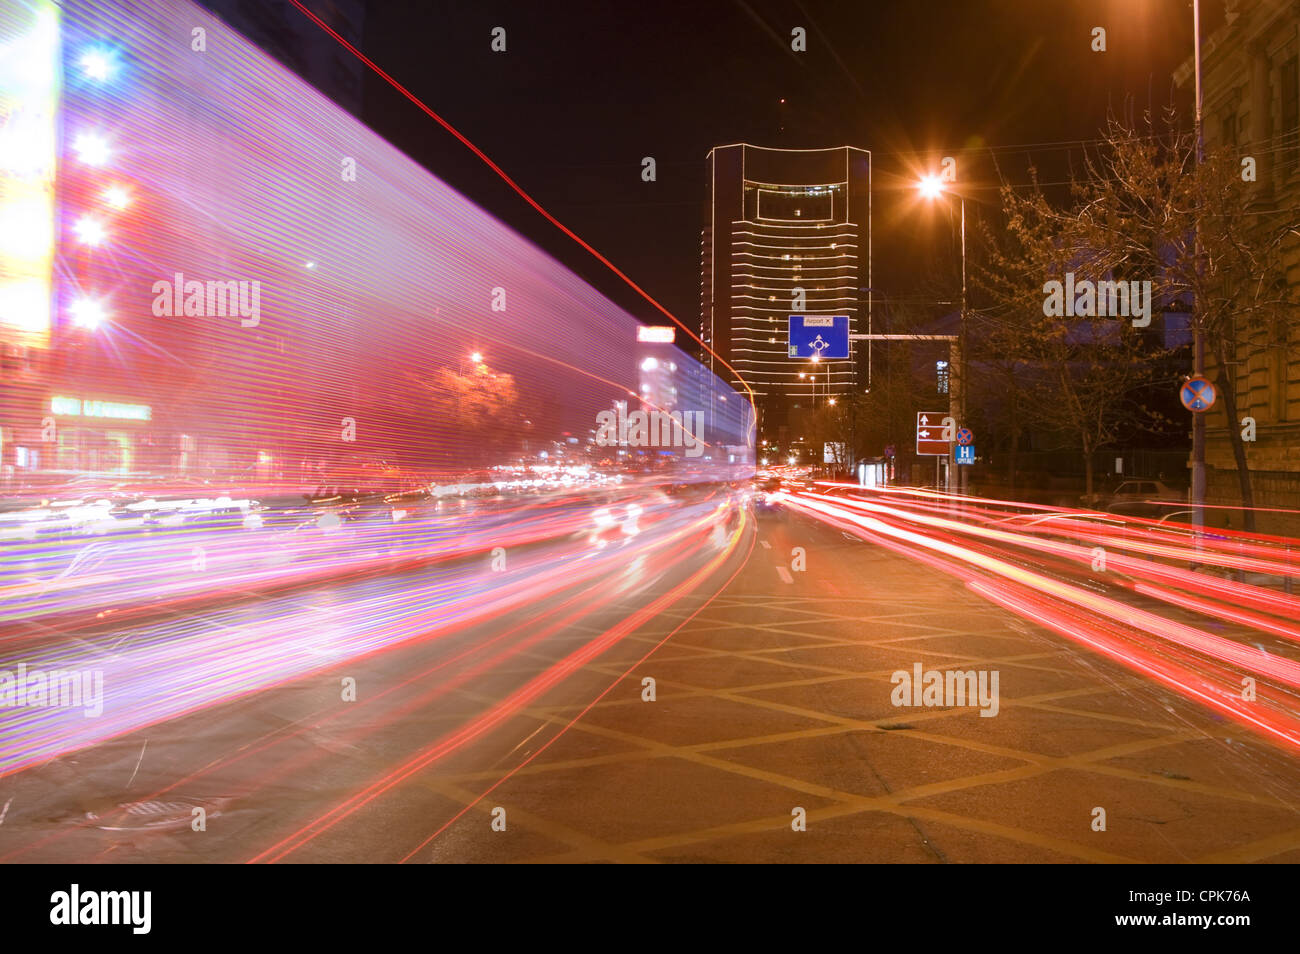 Interesting blurred image of night traffic in a big city.Location:Bucharest,Romania. - Stock Image